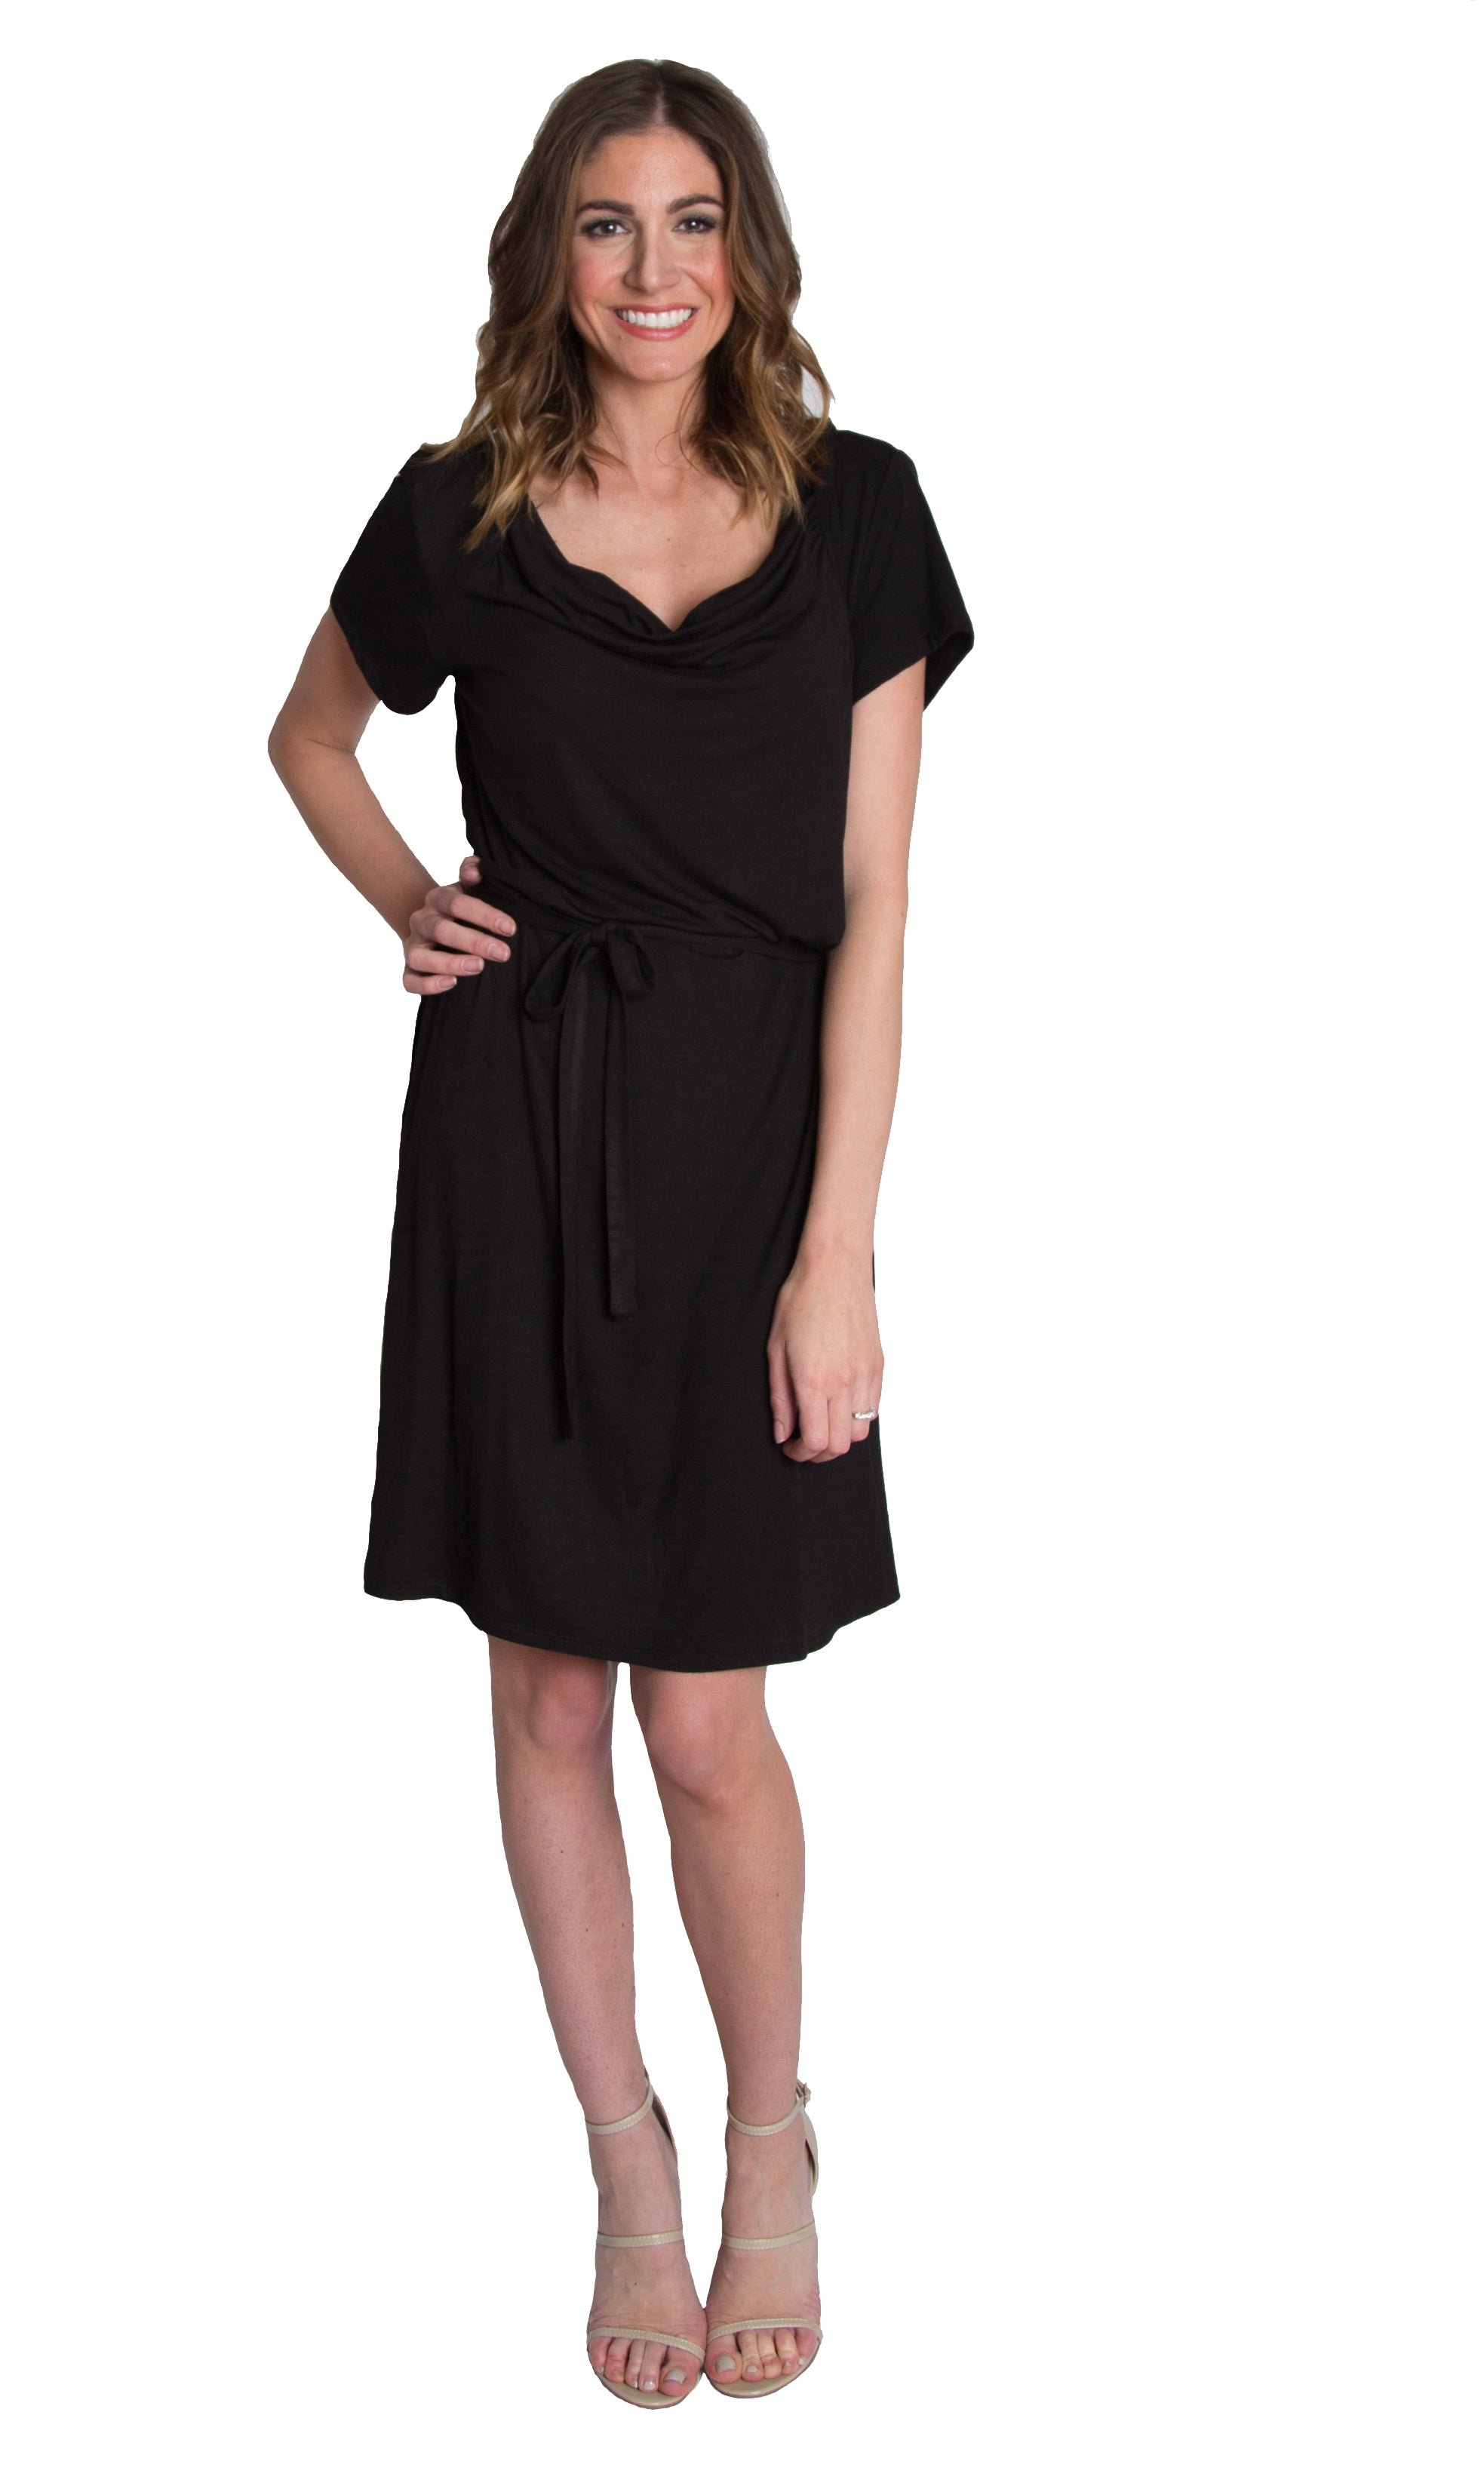 Cowl dress for nursing in black by Udderly Hot Mama